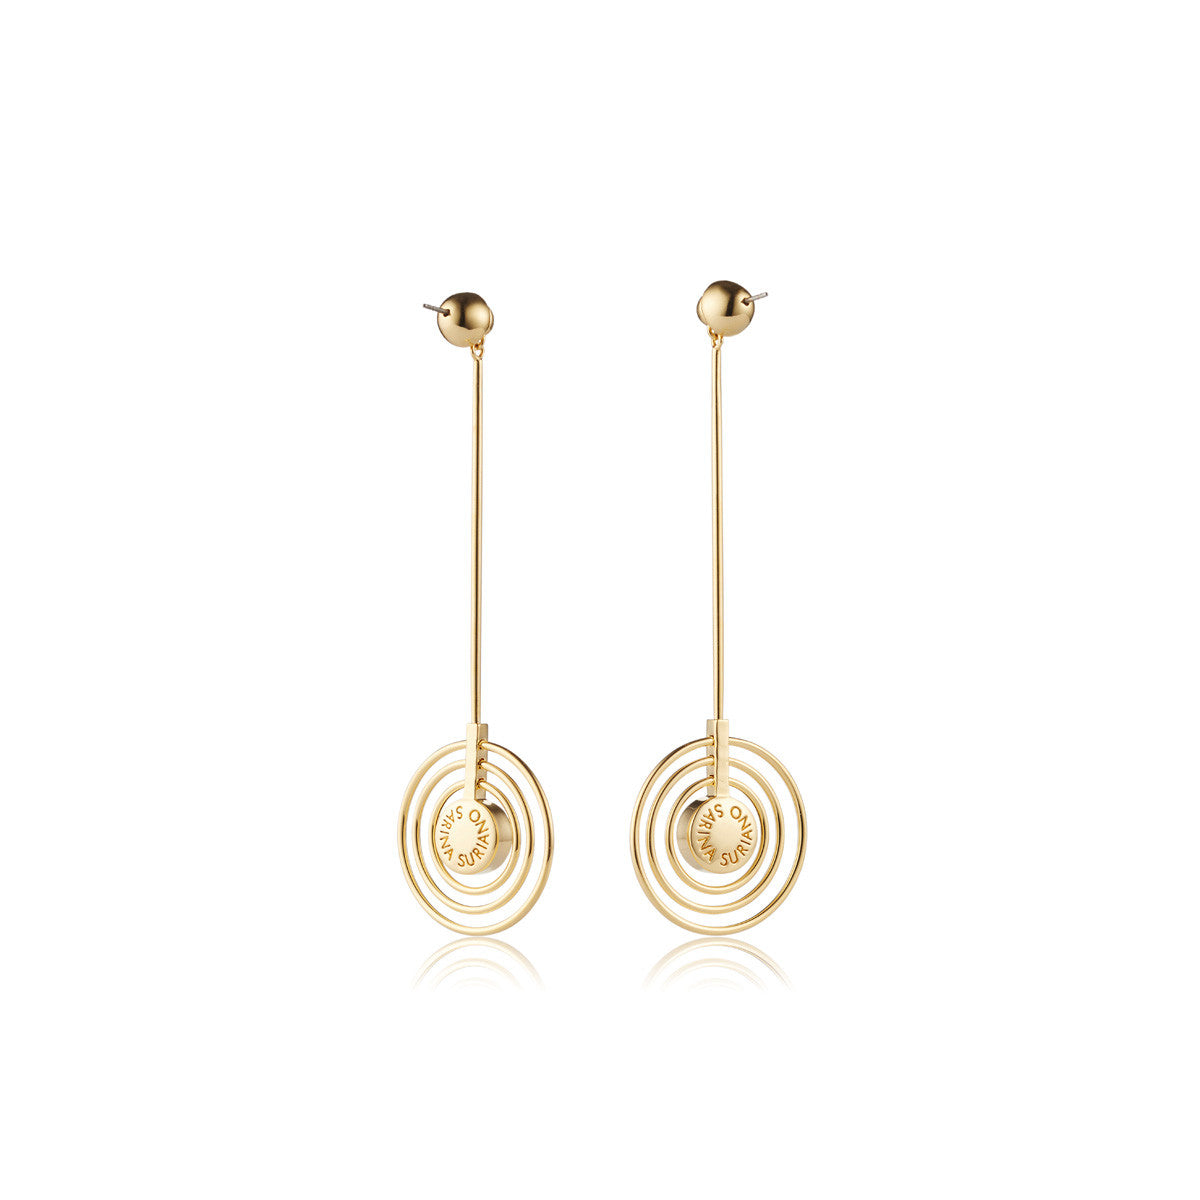 Solid brass, the Splendidus Saturn earrings feature contrasting 18K gold and rhodium plating – back